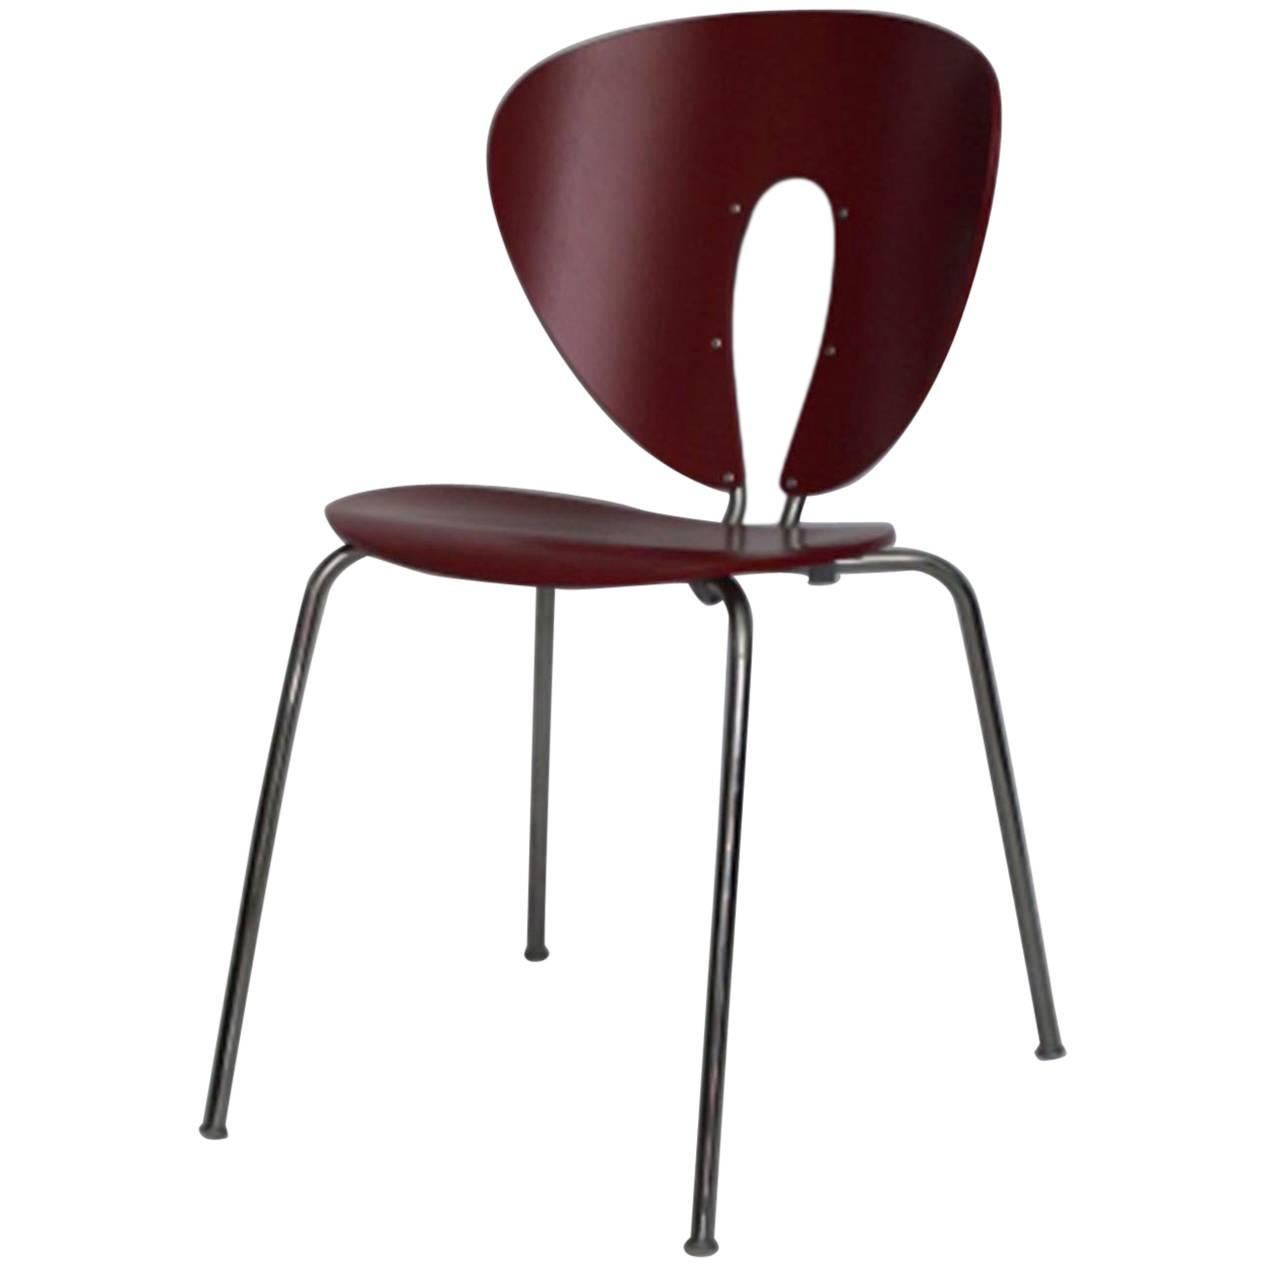 Red Globus Chair By Jesus Gasca For Stua For Sale